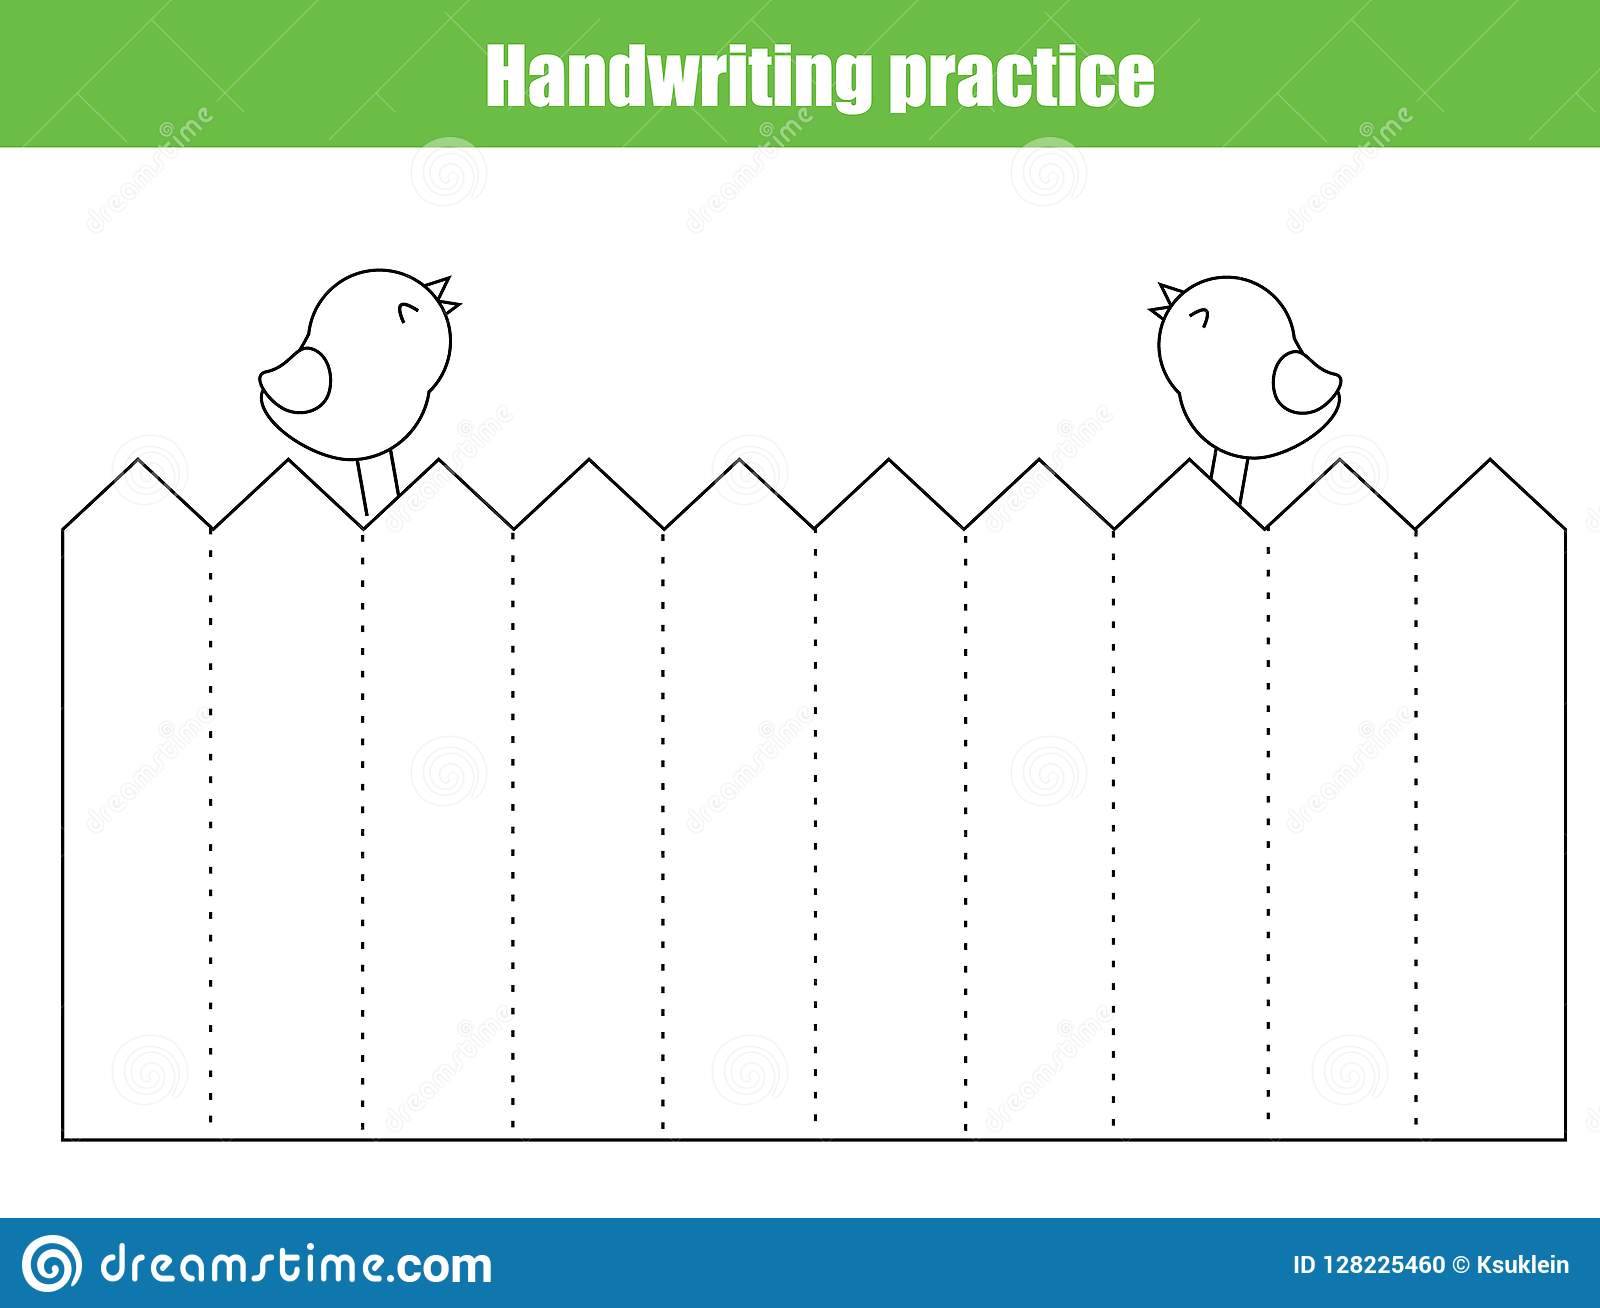 image about Printable Line Sheets called Handwriting Coach Sheet. Enlightening Small children Match